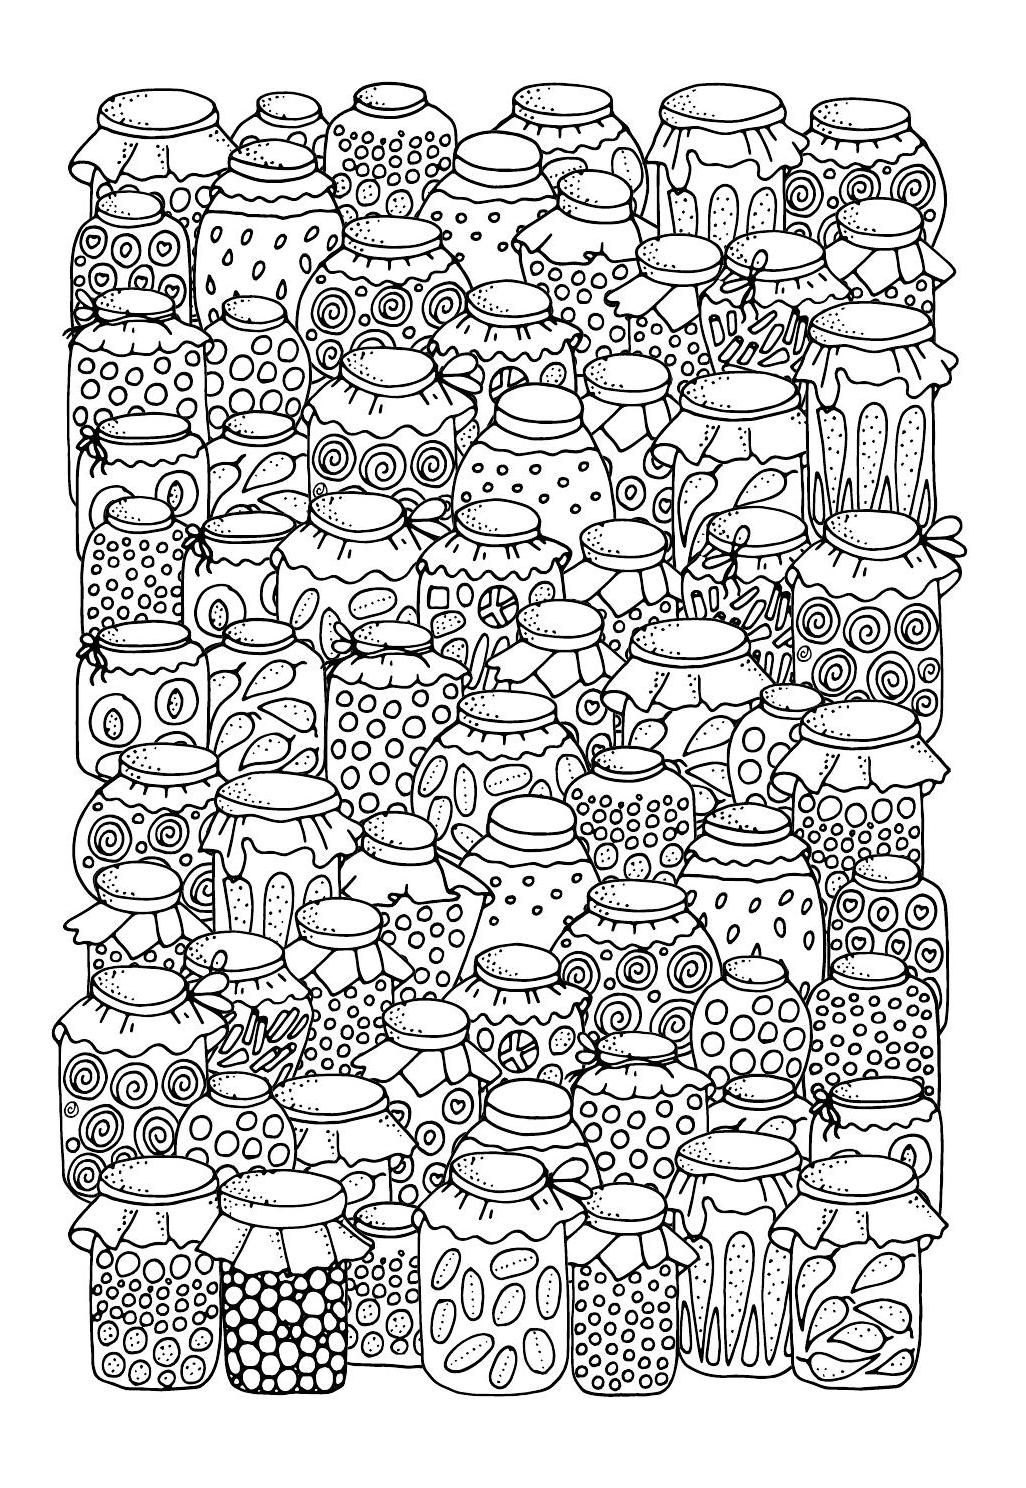 Colour Calm 05 Sampler Coloring Pages Coloring Book Set Cute Coloring Pages